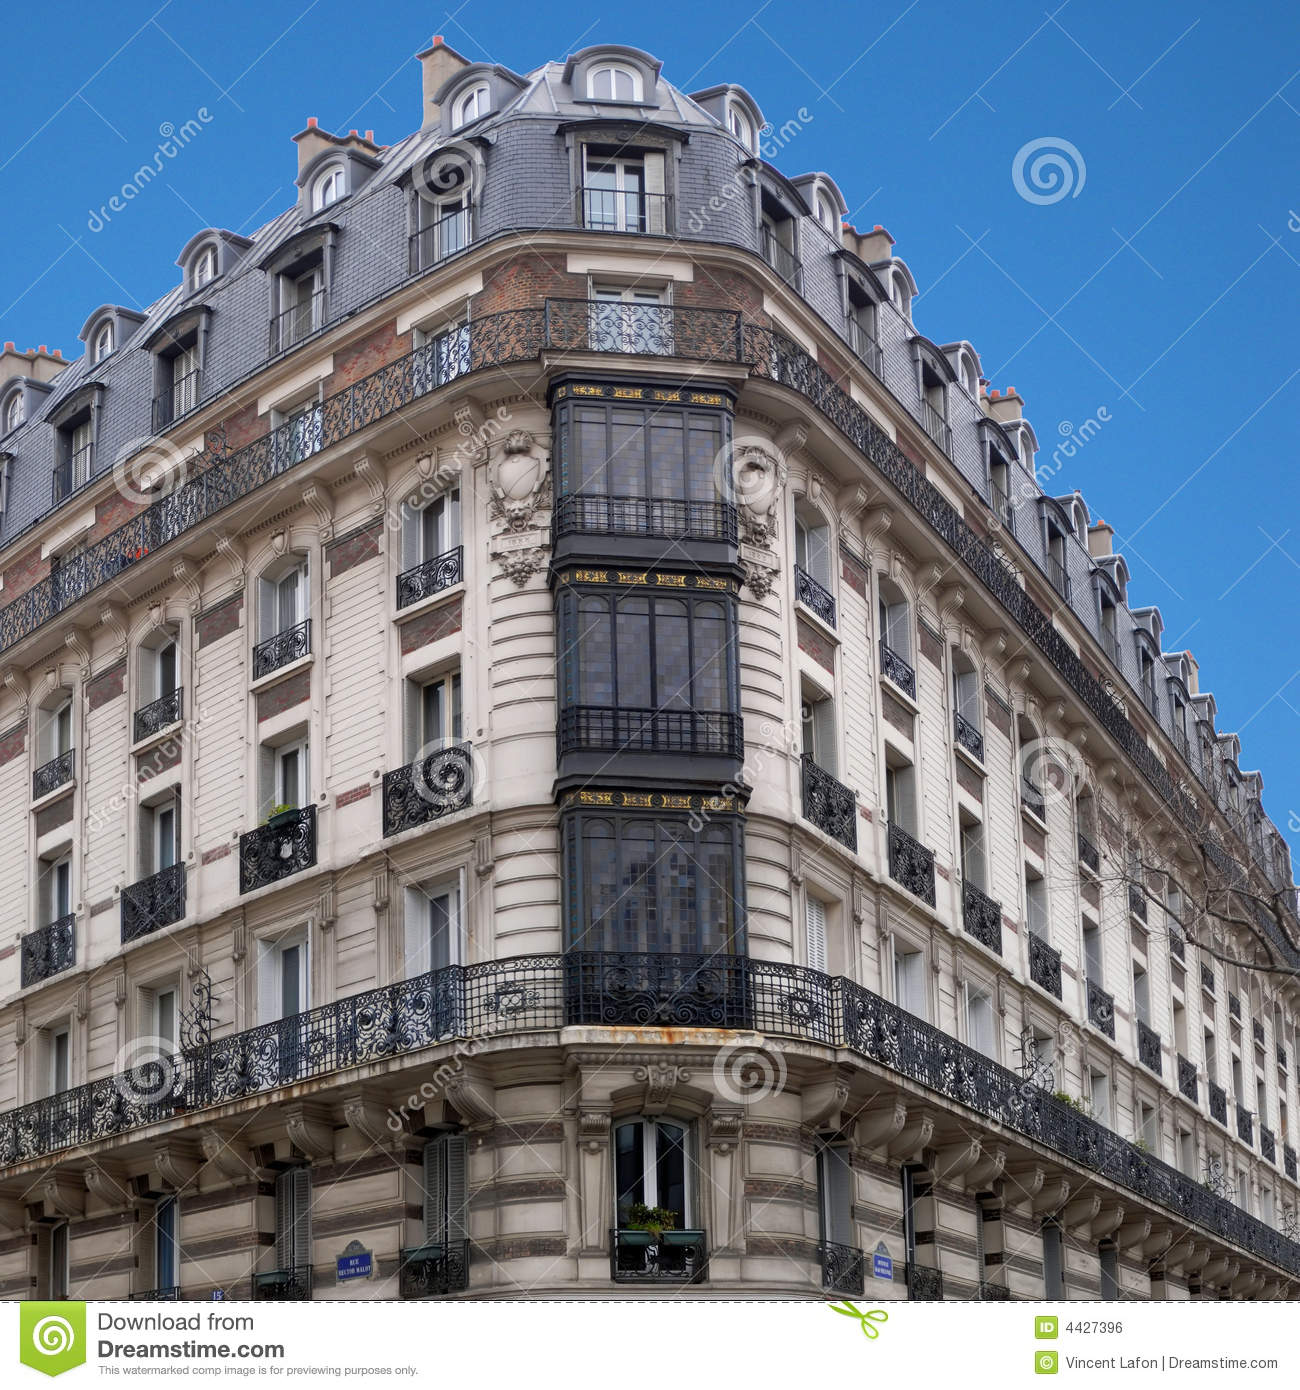 paris architecture h malot corner house 1 stock photo image of construction landmark 4427396. Black Bedroom Furniture Sets. Home Design Ideas